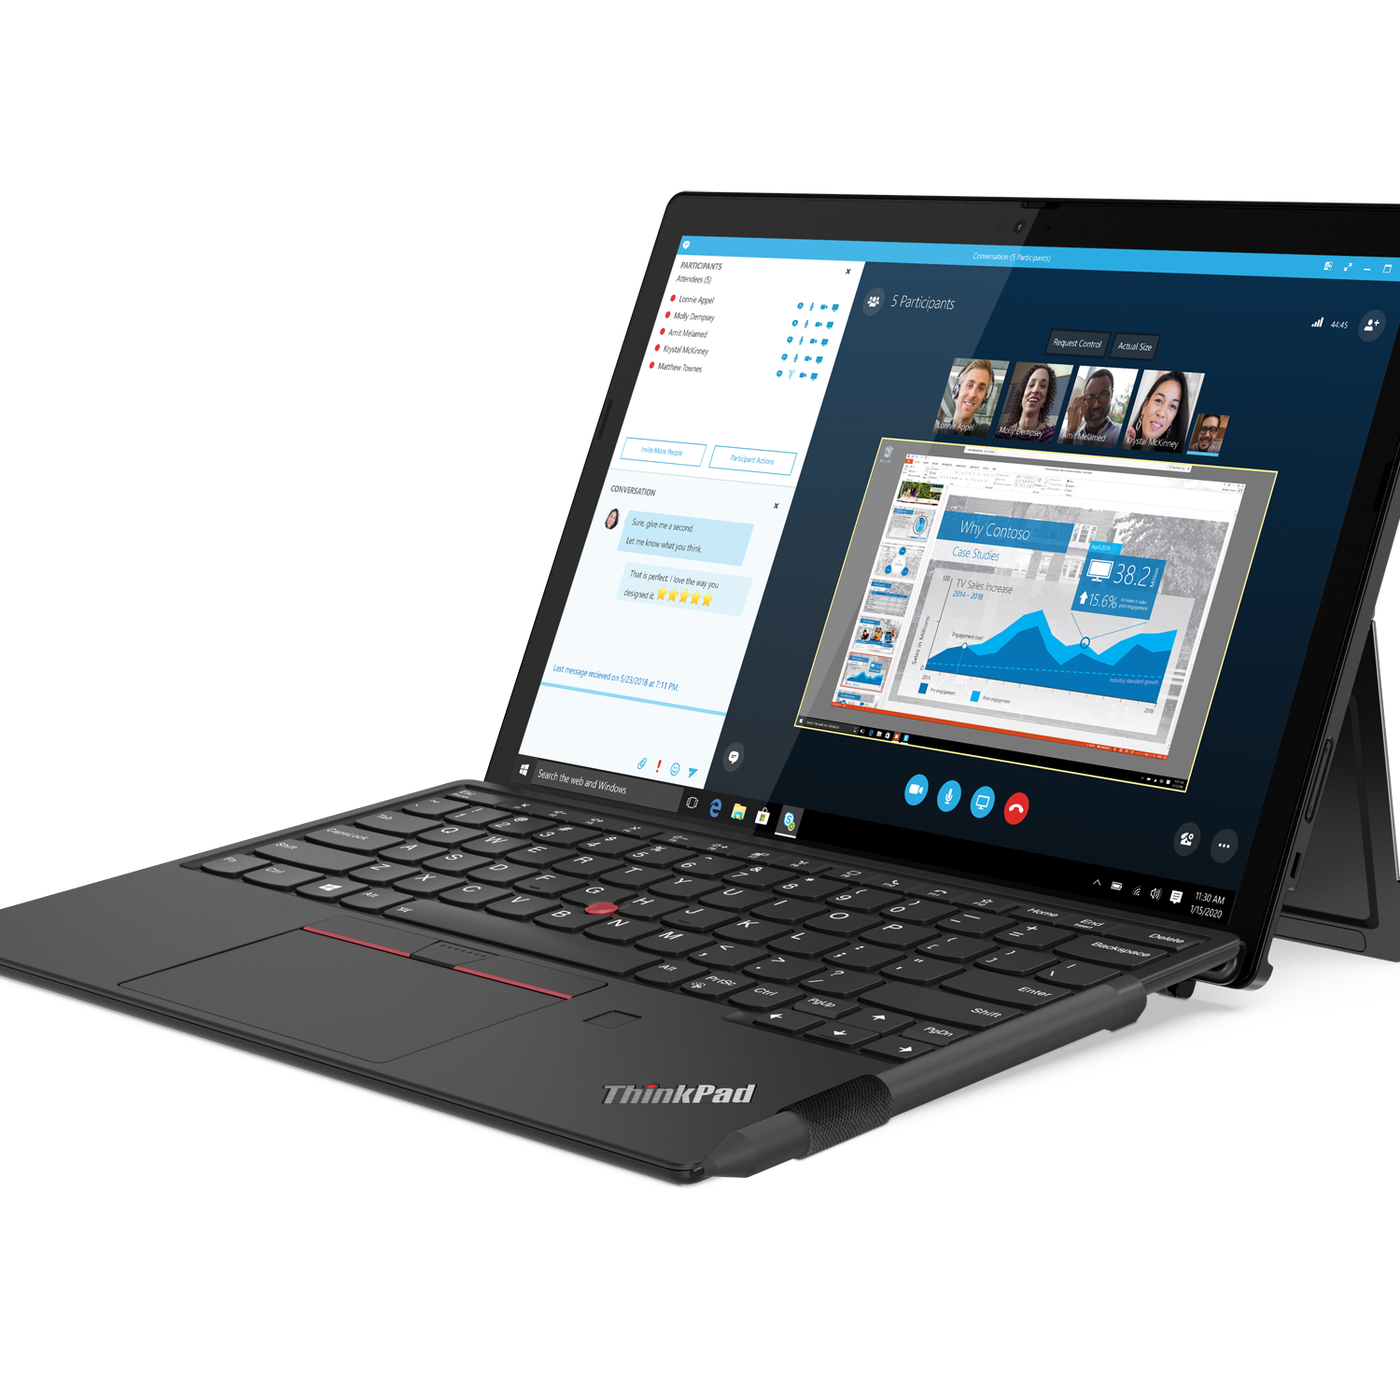 Lenovo ThinkPad X12 Detachable Review